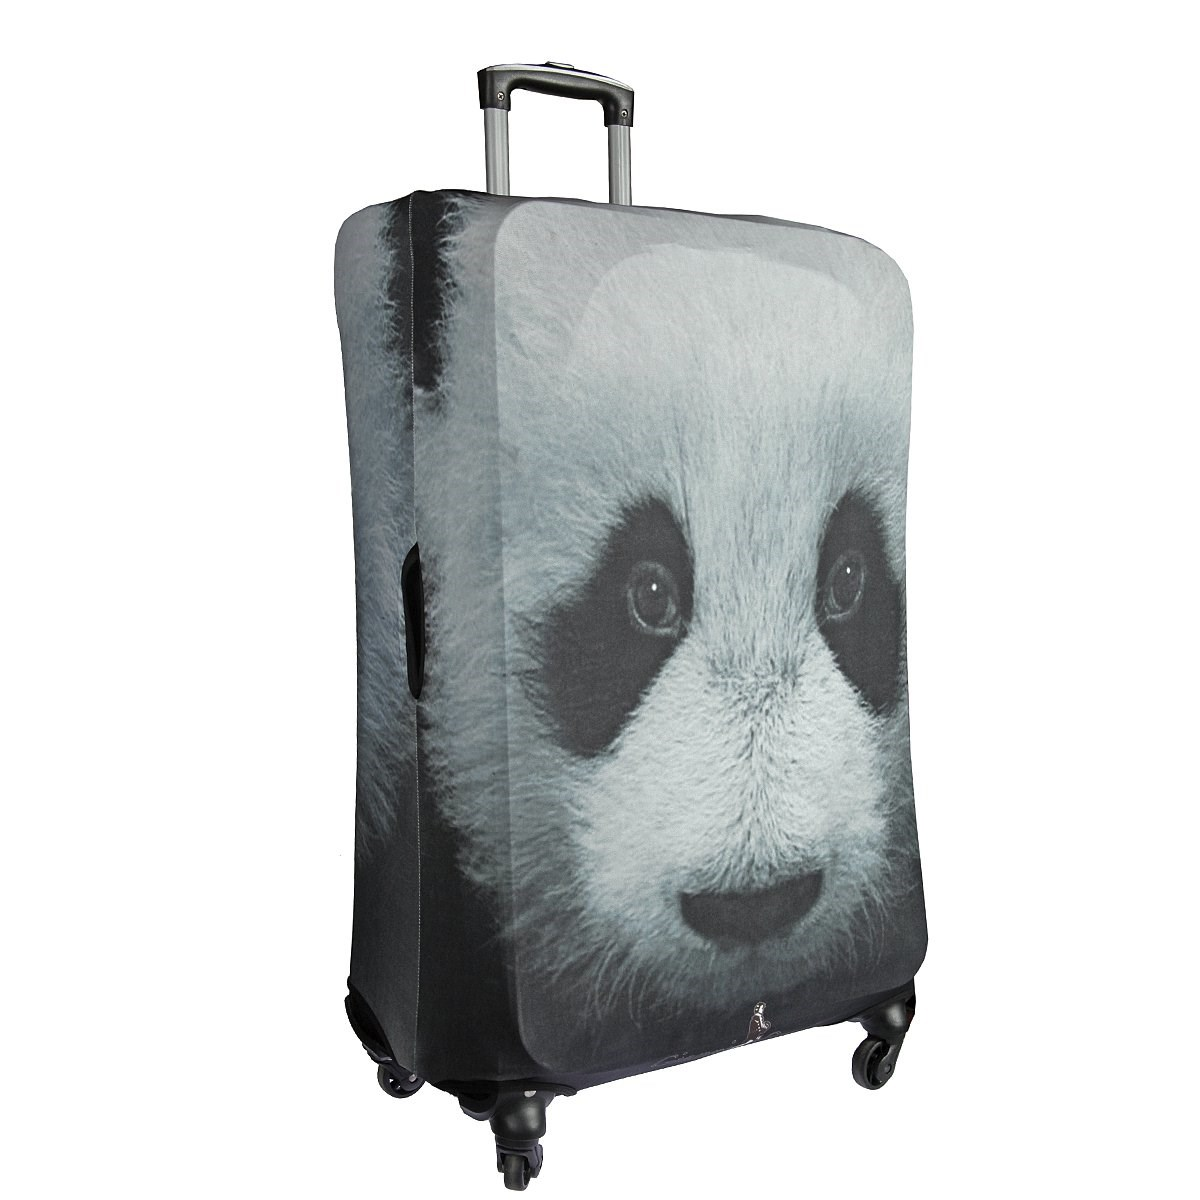 Protective cover for suitcase Panda 9026 M protective cover for suitcase 9005 m